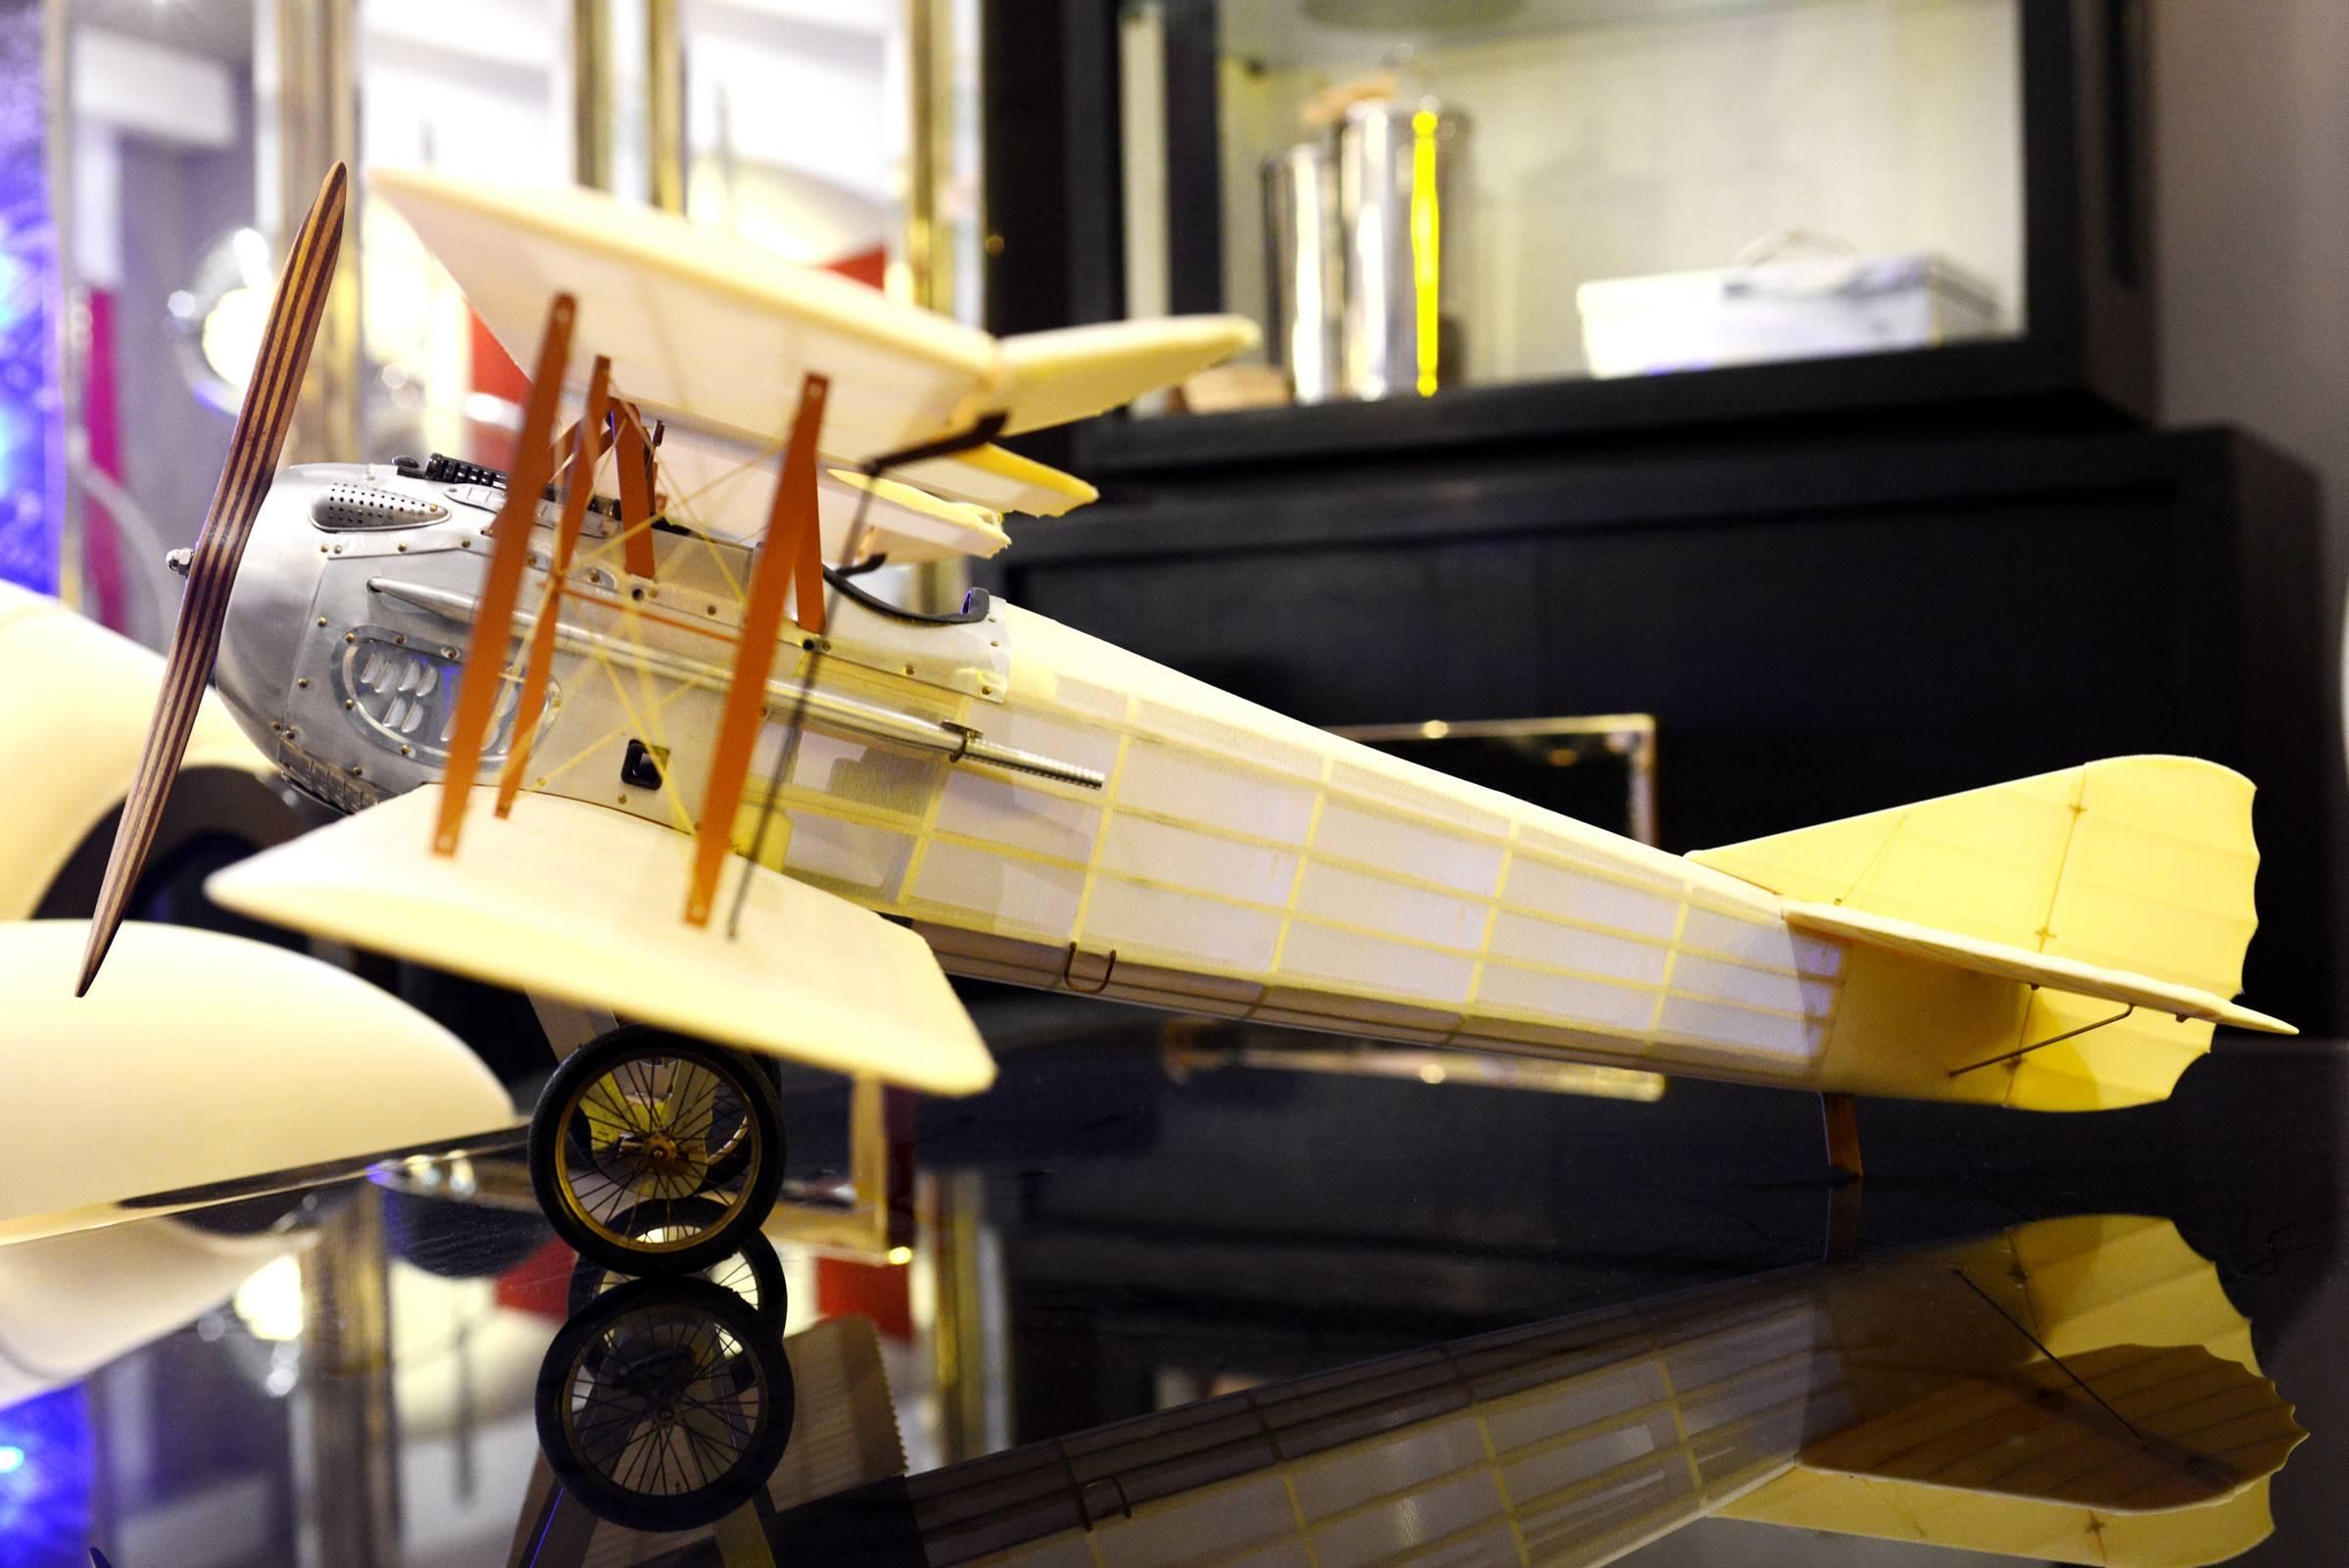 Old Charles Model Aeroplane Transparent Spad Plane Type For Sale at ...